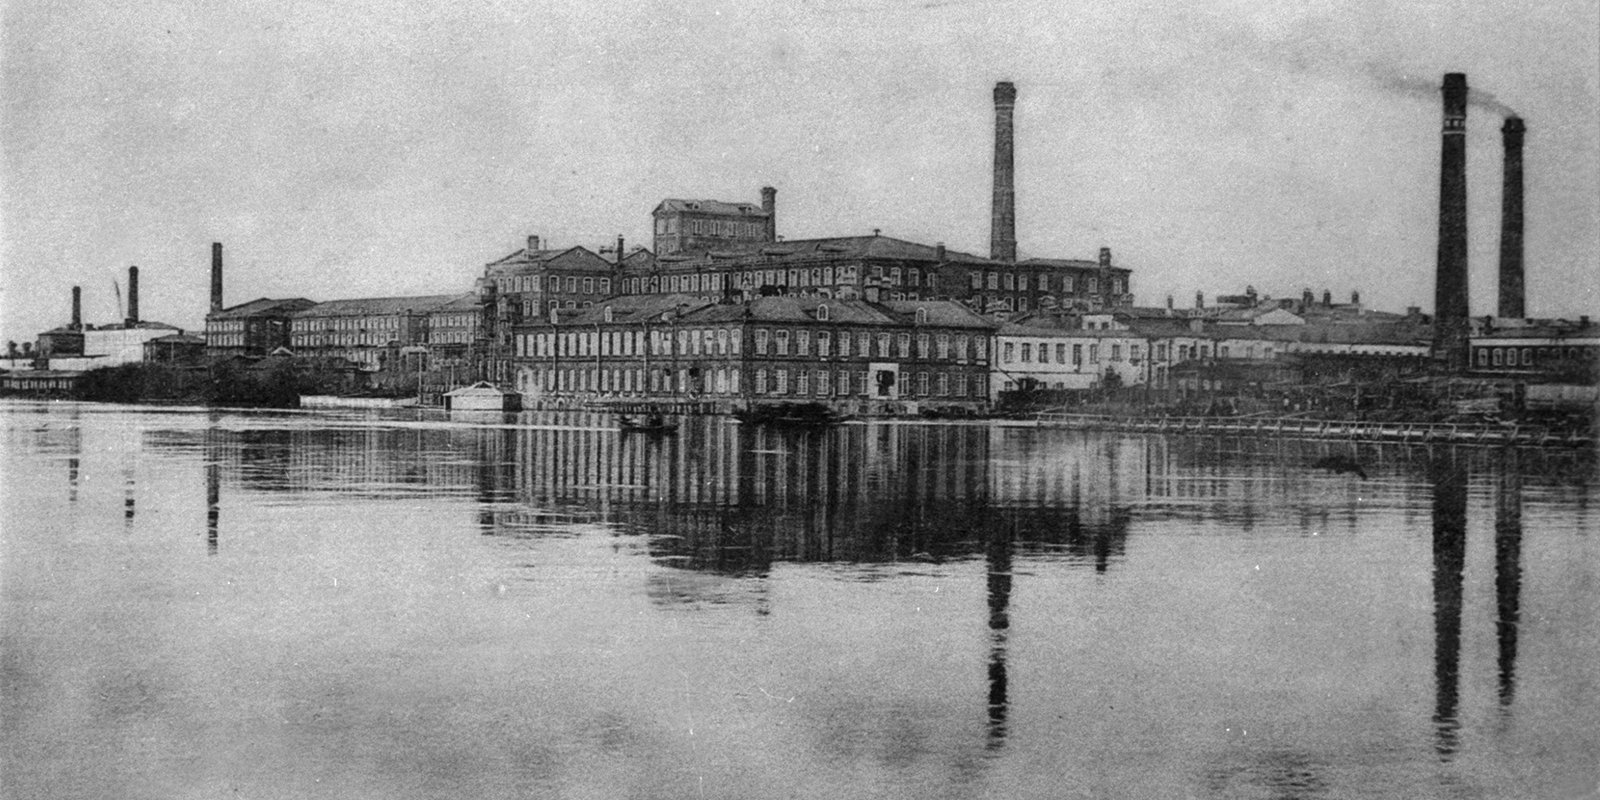 ikolskaya Manufactory owned by the Morozovs